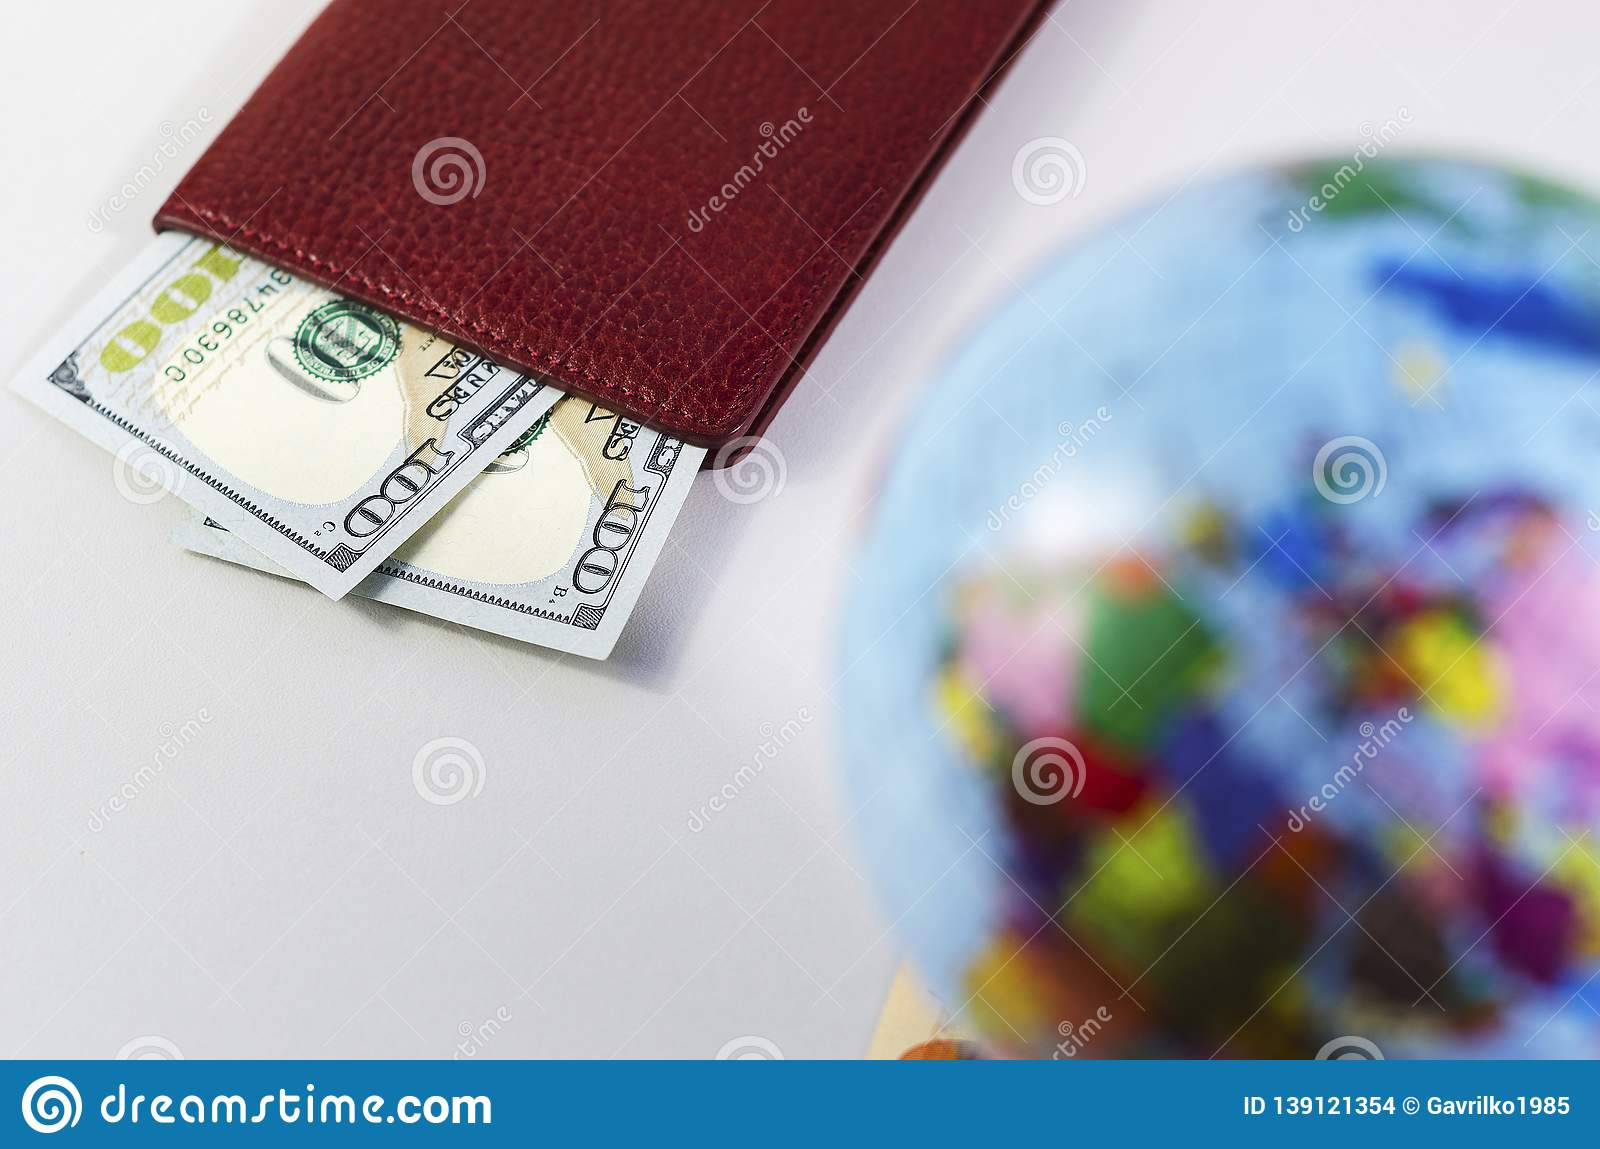 Money inside the passport and the globe is out of focus